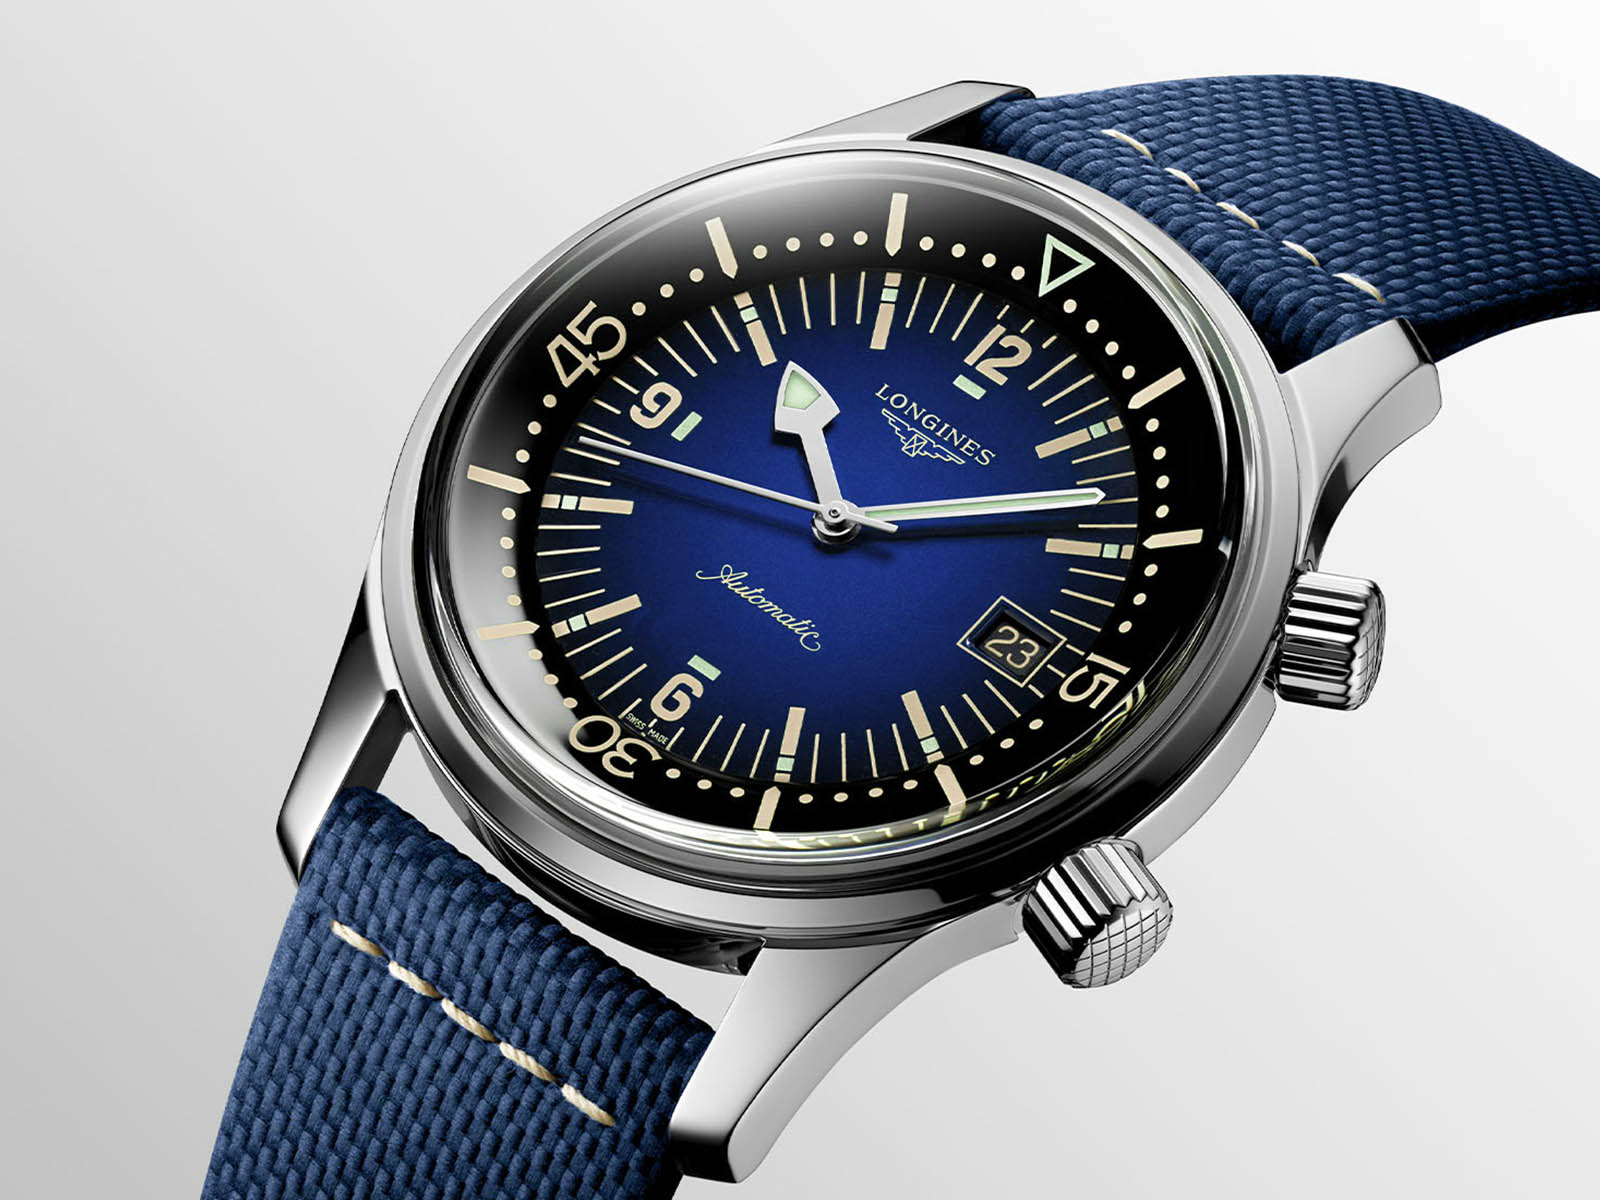 l3-774-4-90-2-longines-legend-diver-new-dial-colors-2.jpg